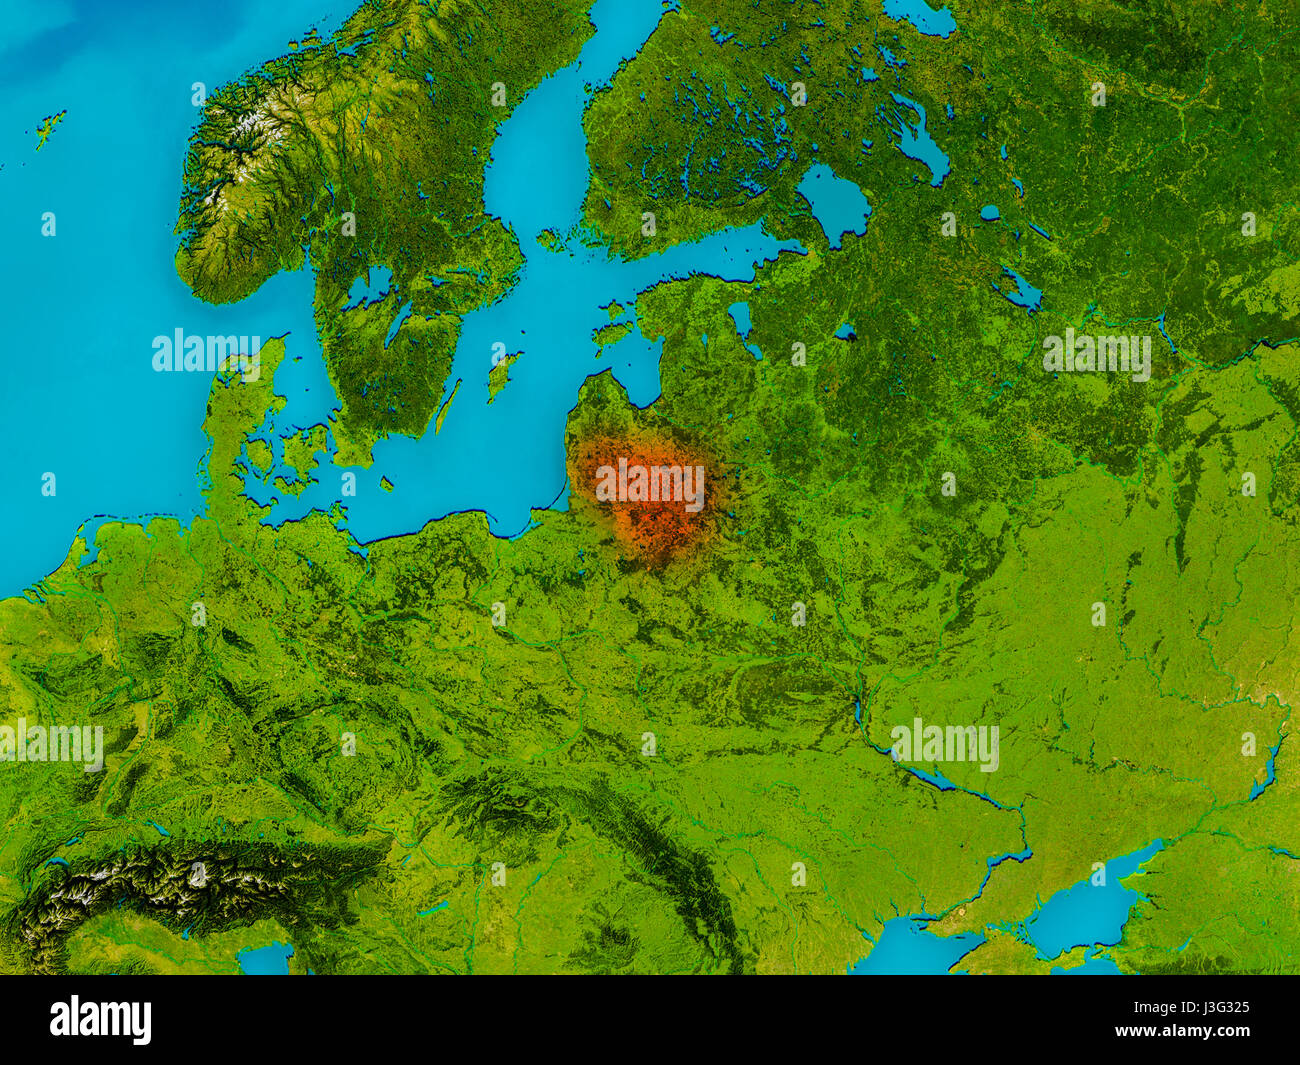 Lithuania Highlighted In Red On Physical Map D Illustration - Lithuania physical map